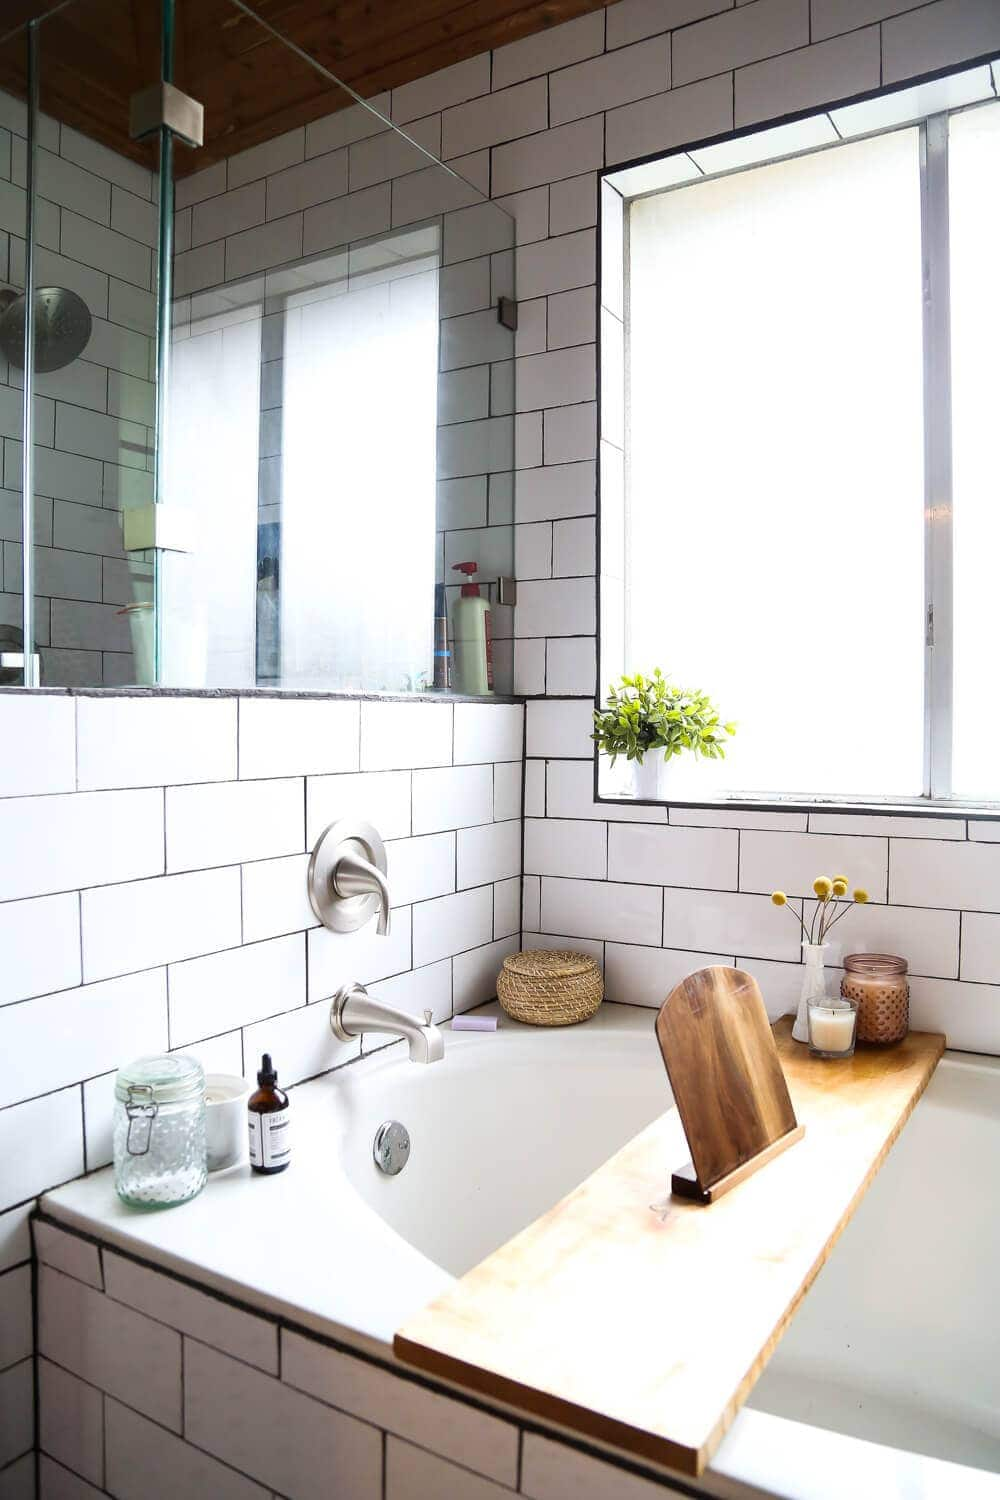 DIY Bathroom Remodel Ideas for a BudgetFriendly Beautiful Remodel